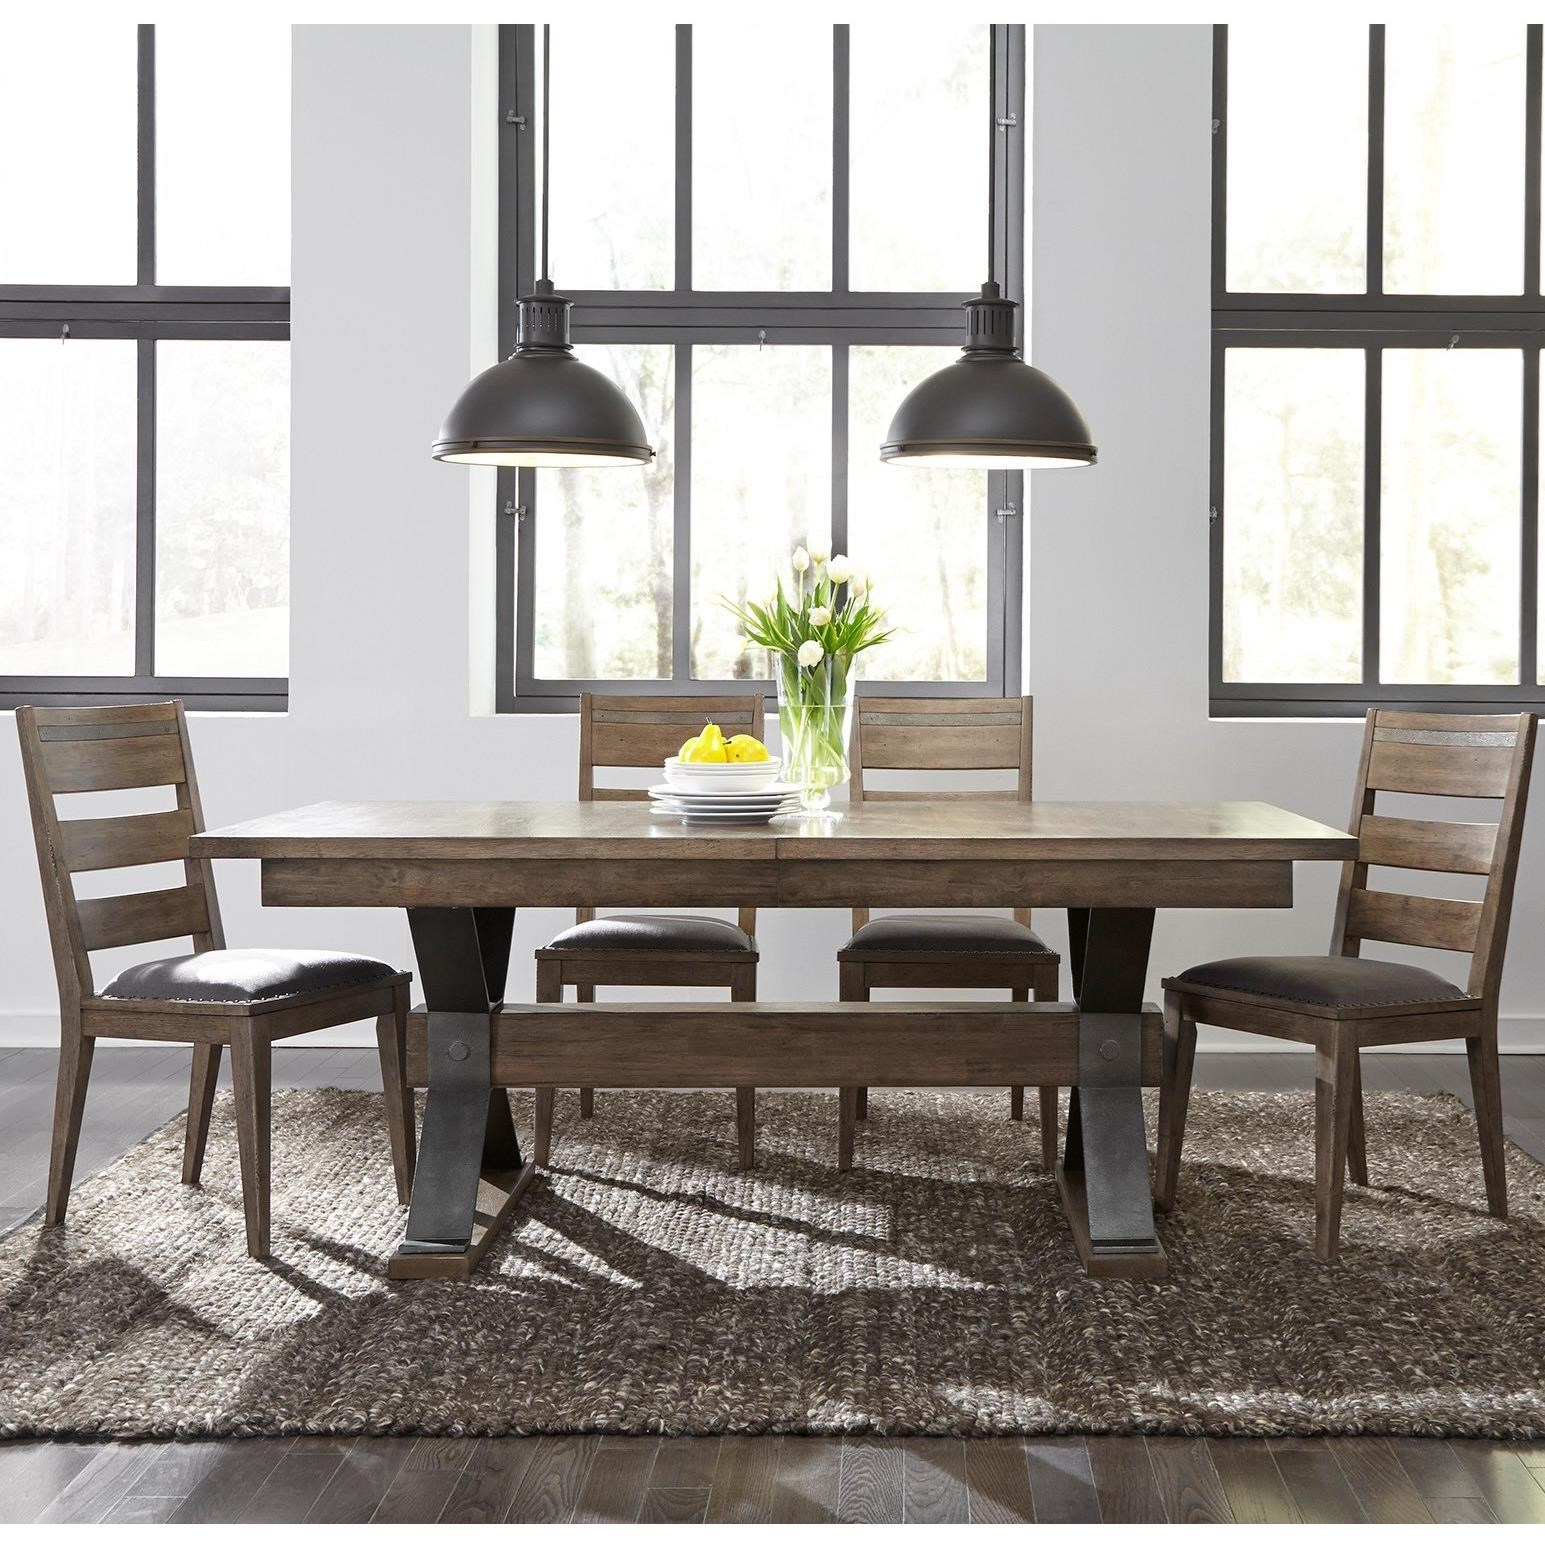 Liberty Furniture Sonoma Road 5 Piece Table And Chair Set Item Number 473